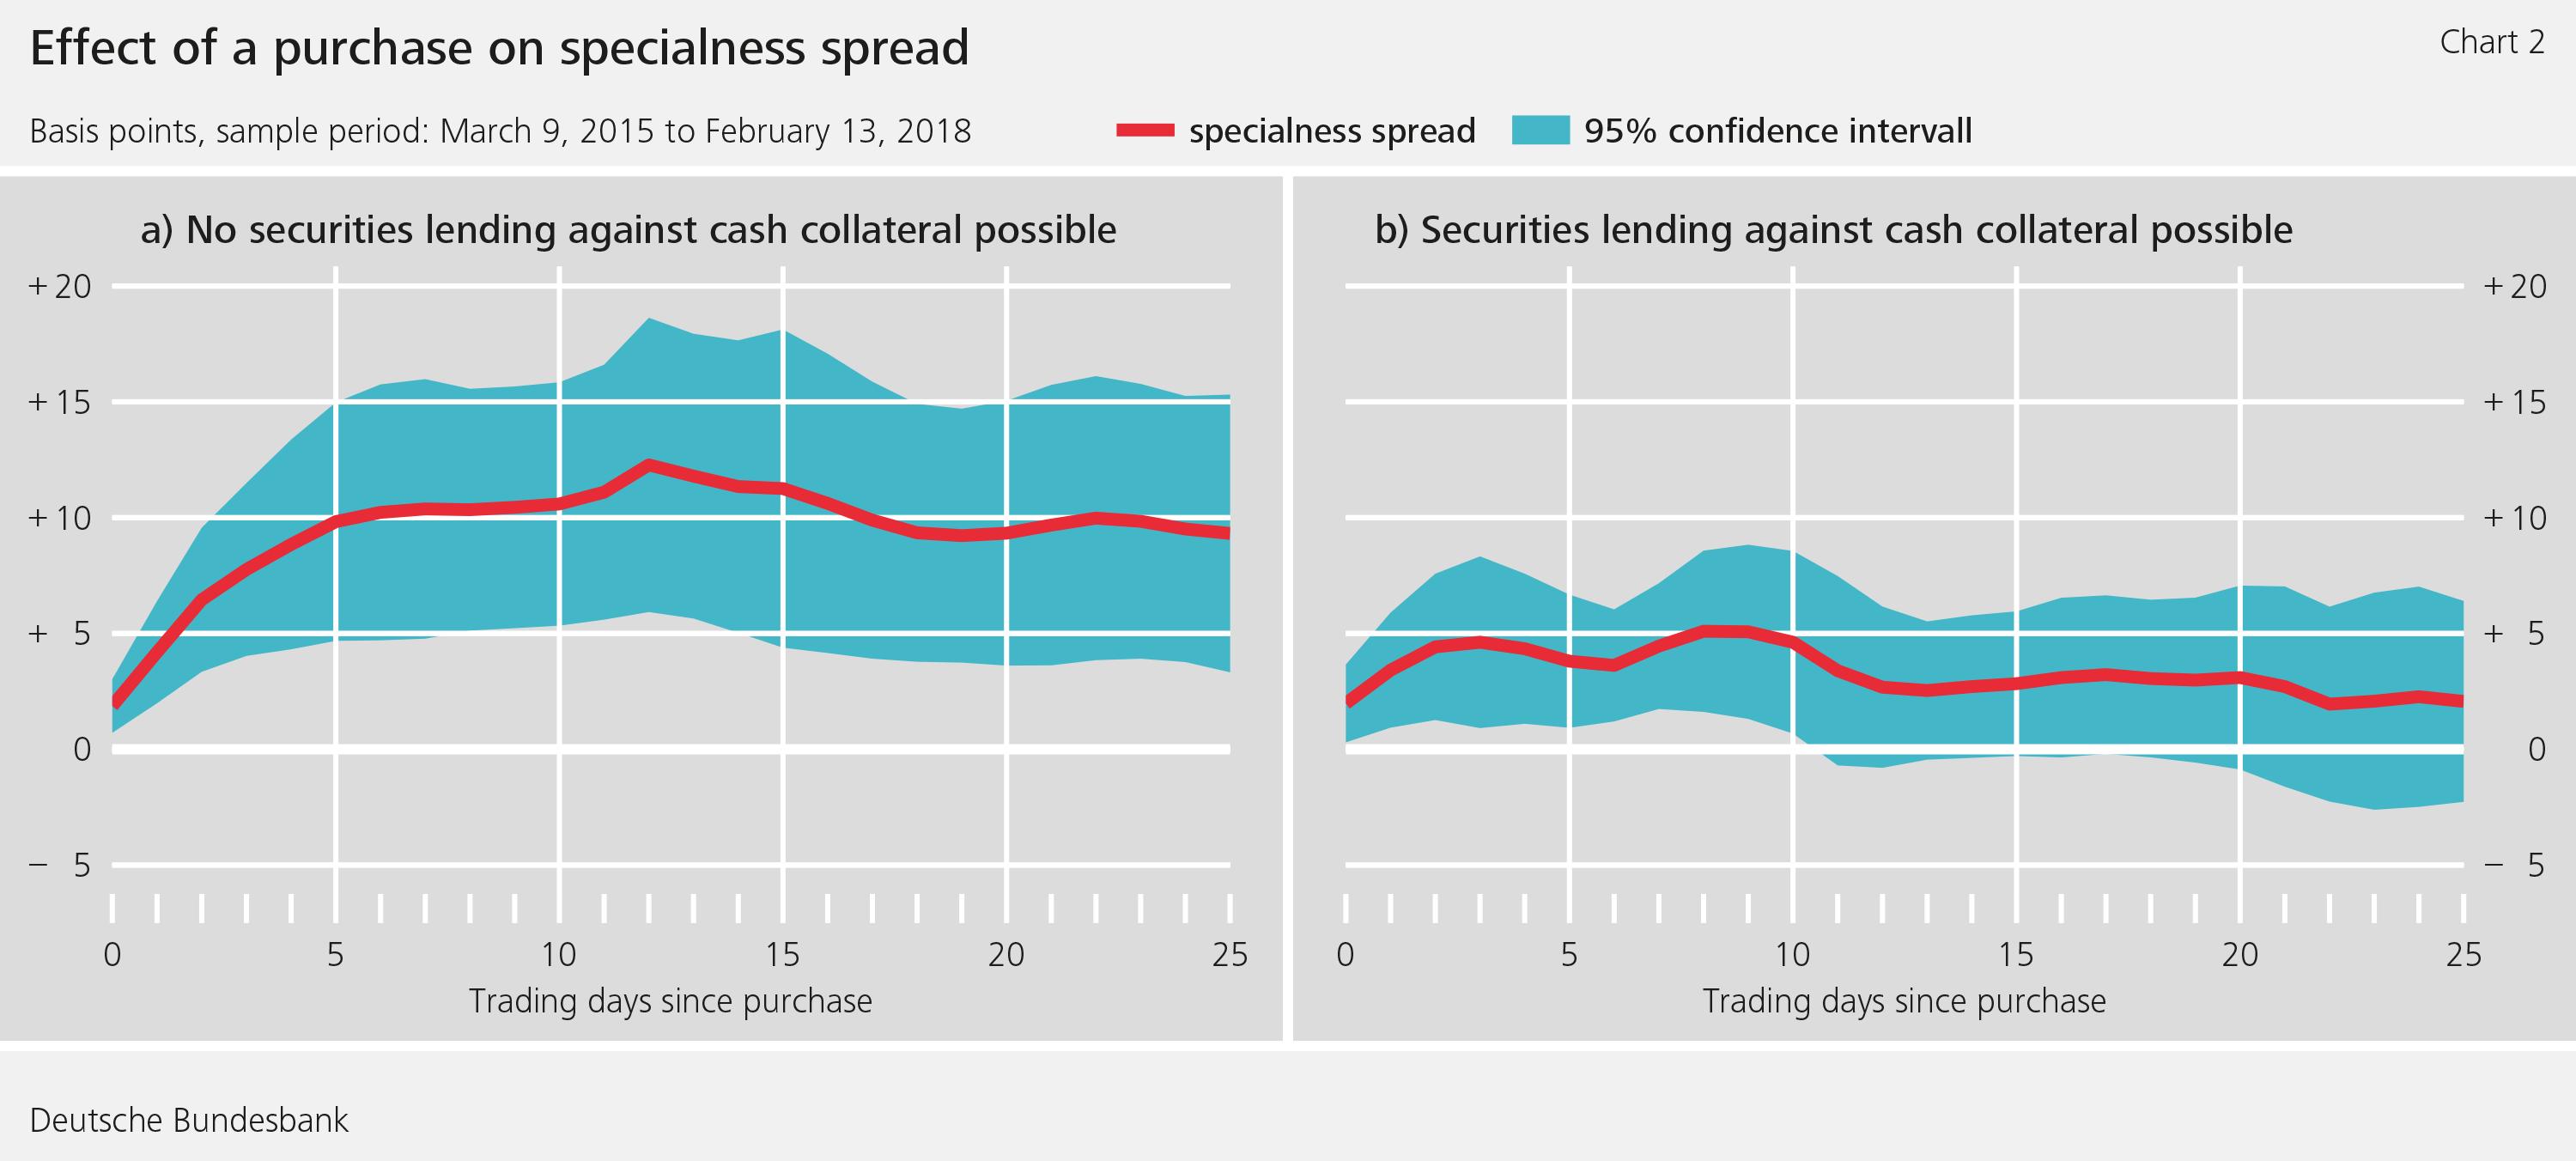 Figure 2: Effect of a purchase on specialness spread